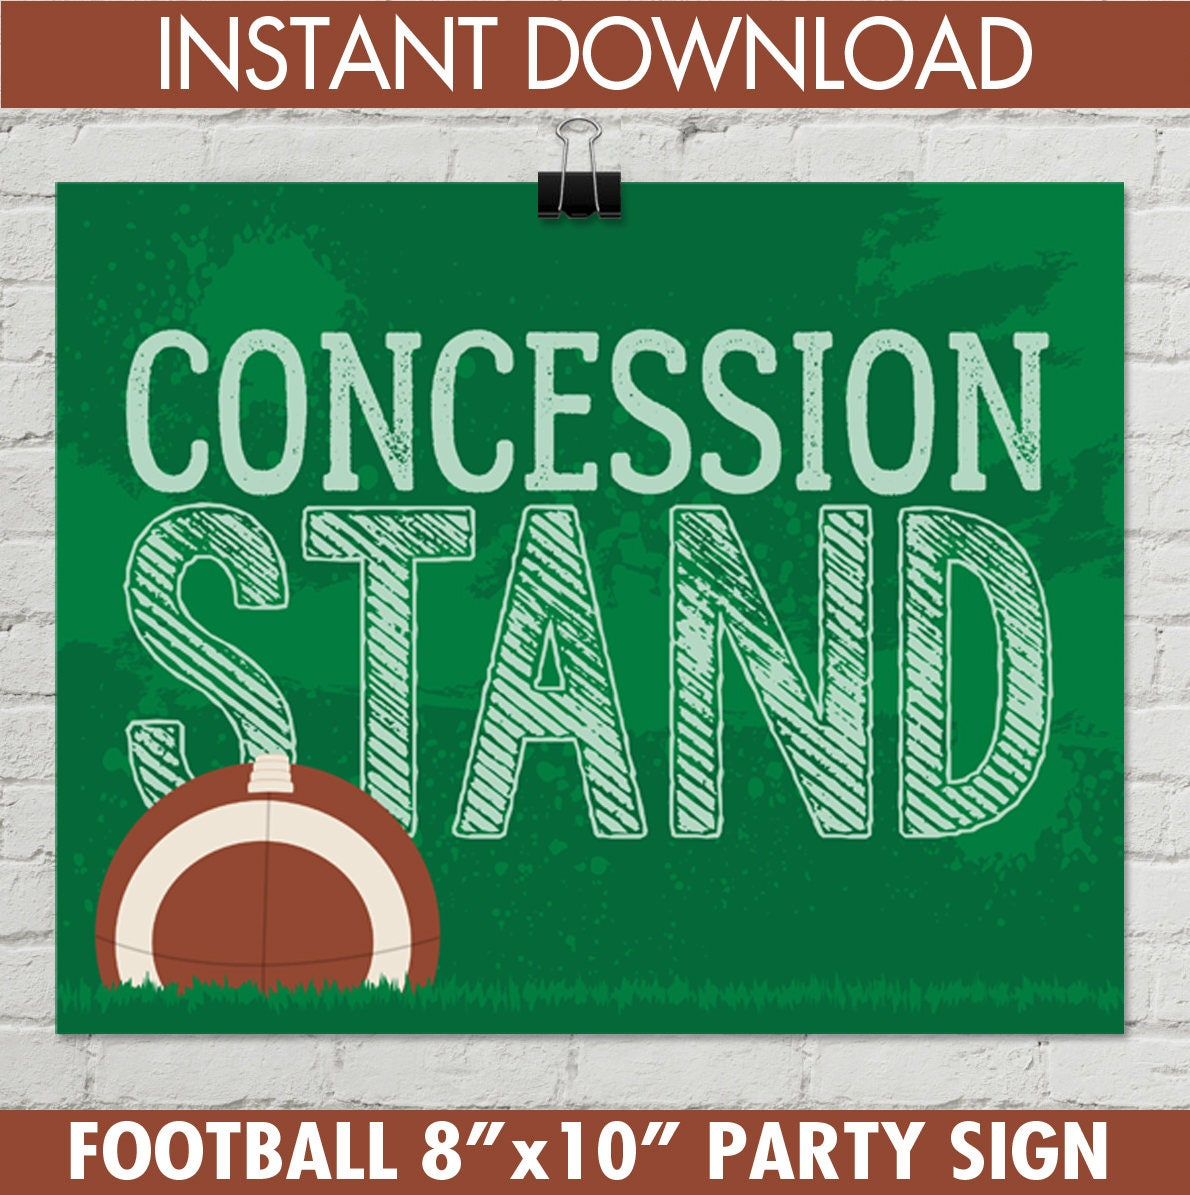 Fabulous image intended for concession stand signs printable